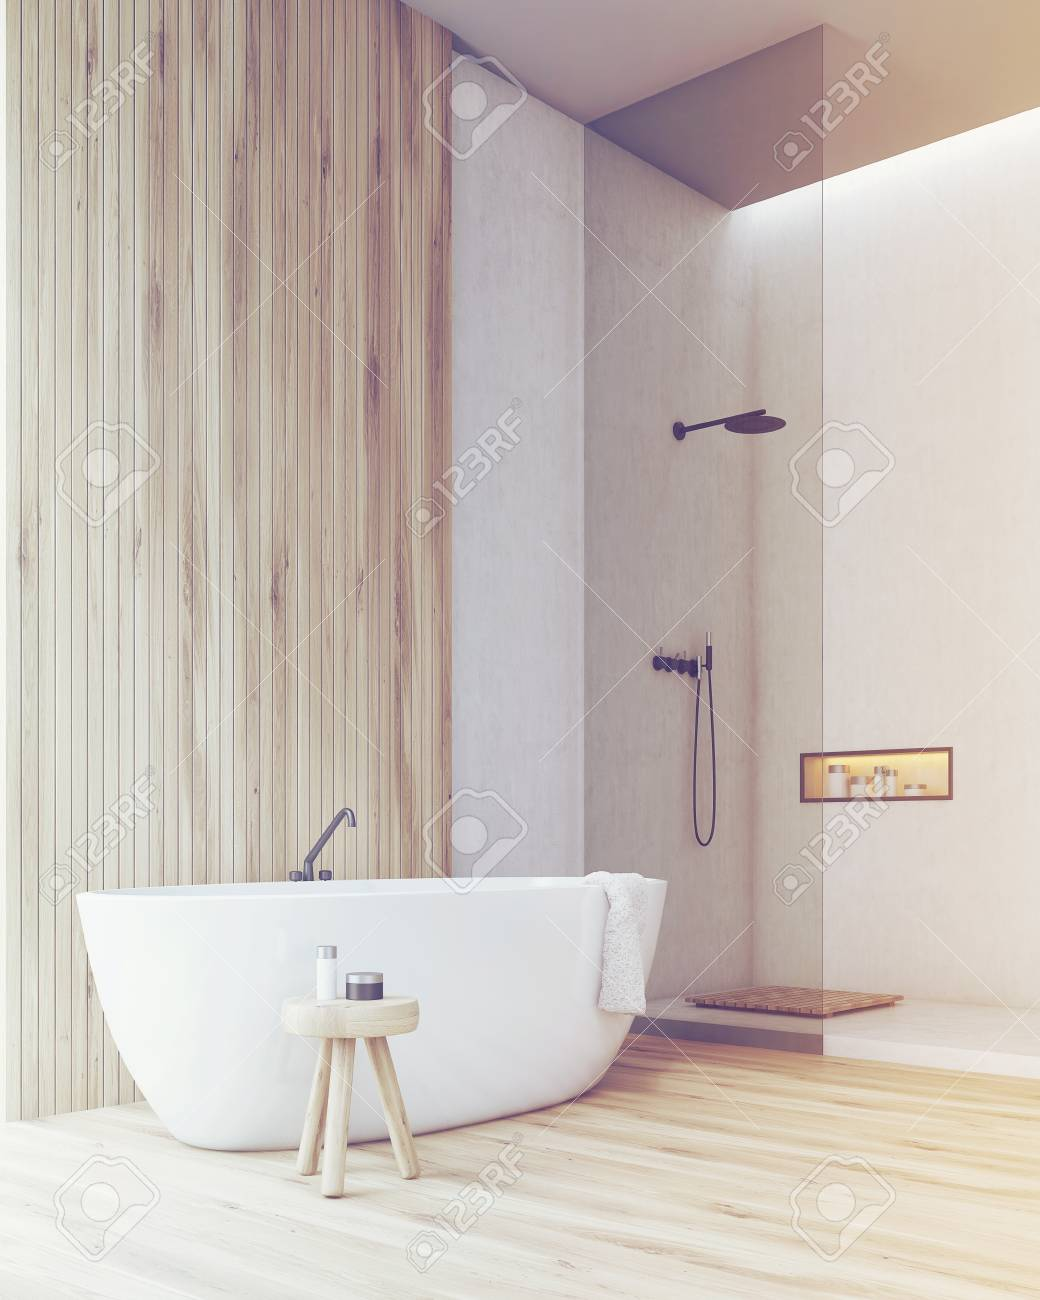 Corner Of A Bathroom With A Wooden Part Of The Wall And Floor ...